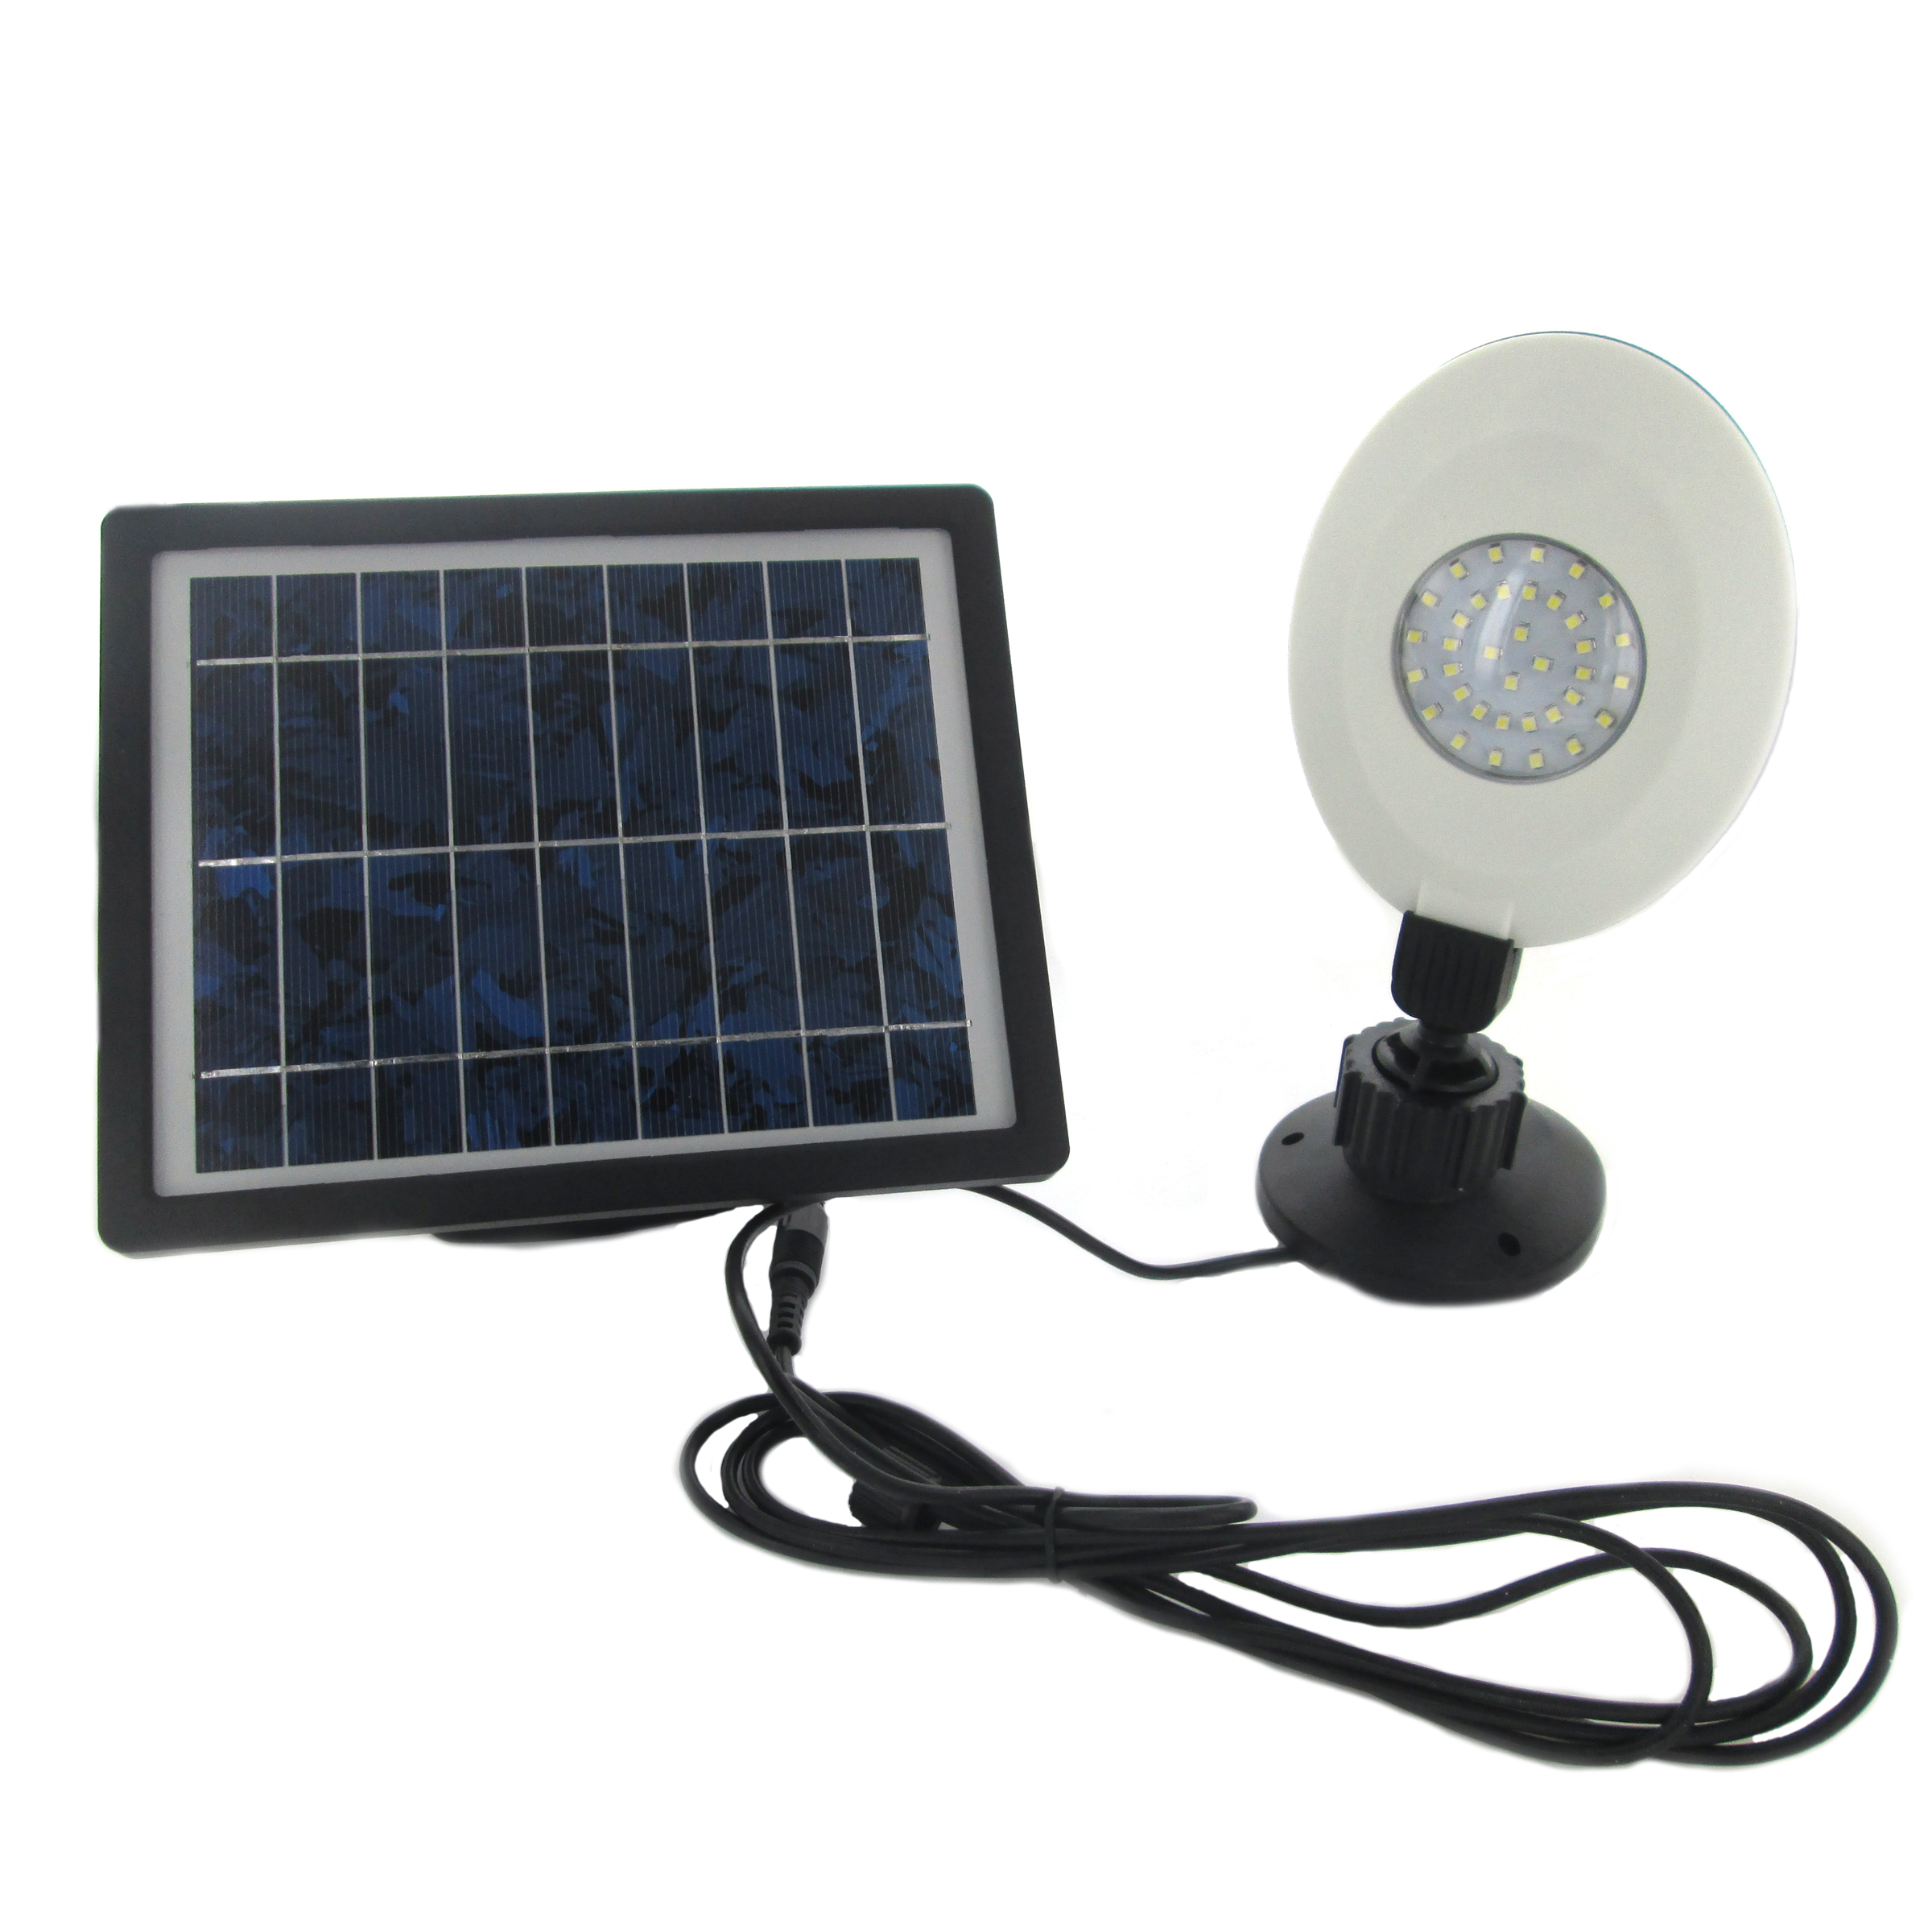 Solar 36 LED Rechargeable Wall Mounted Outdoor Entryway Garden Shed Flood Light eBay